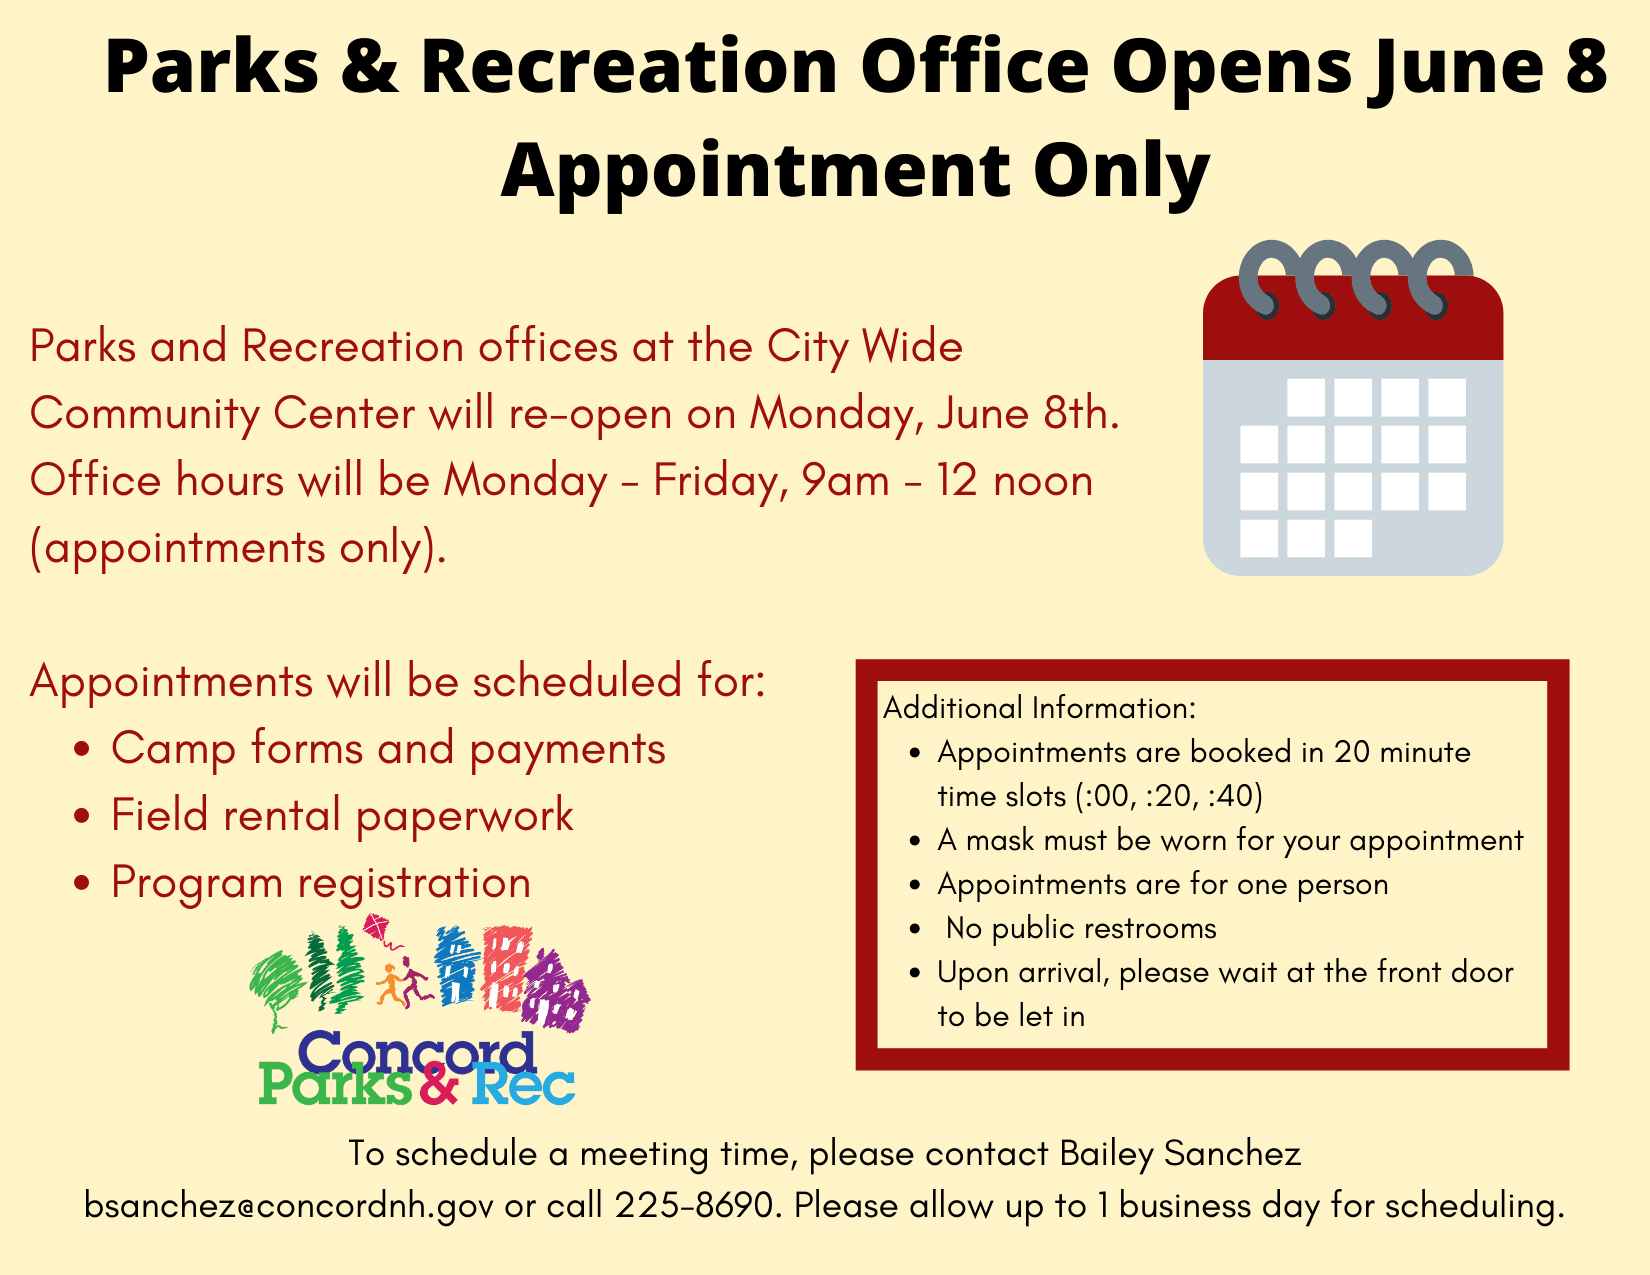 Parks and Recreation Office Opens June 8 Appointment Only